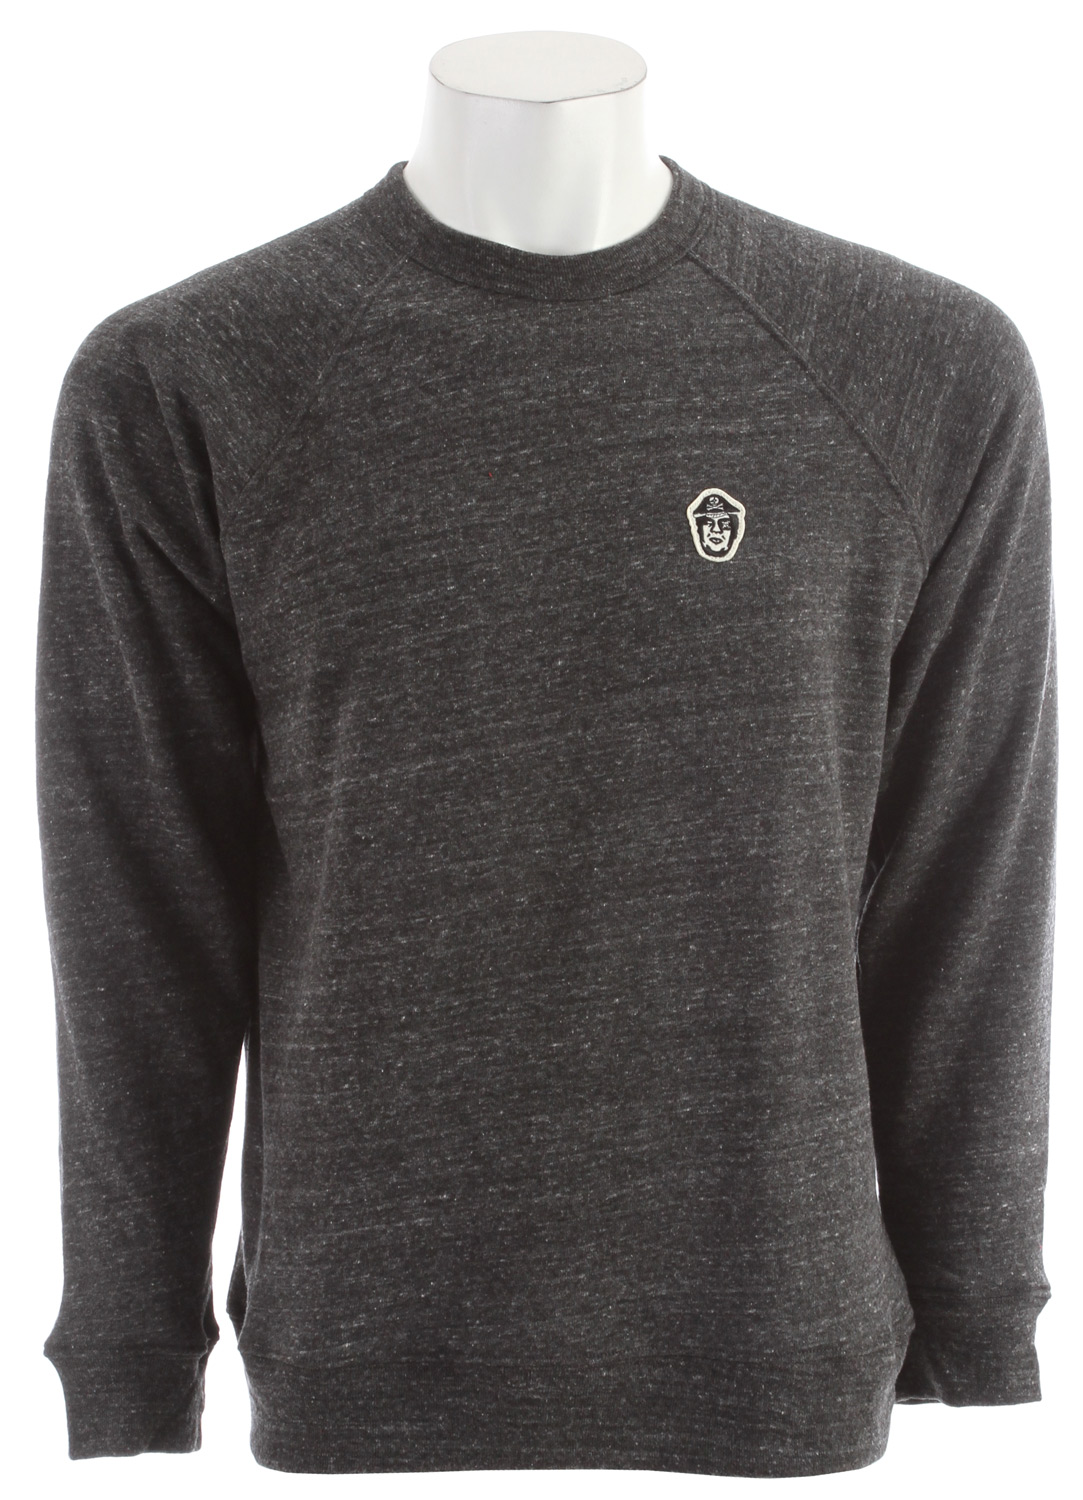 Key Features of the Obey Captain Crew Sweatshirt: Slim fit crew neck fleece with raglan sleeves Features heathered tri-blend fabrication Includes custom OBEY pirate patch on chest and specialty main label at interior neck 50% Polyester / 38% Cotton / 12% Rayon - $44.95